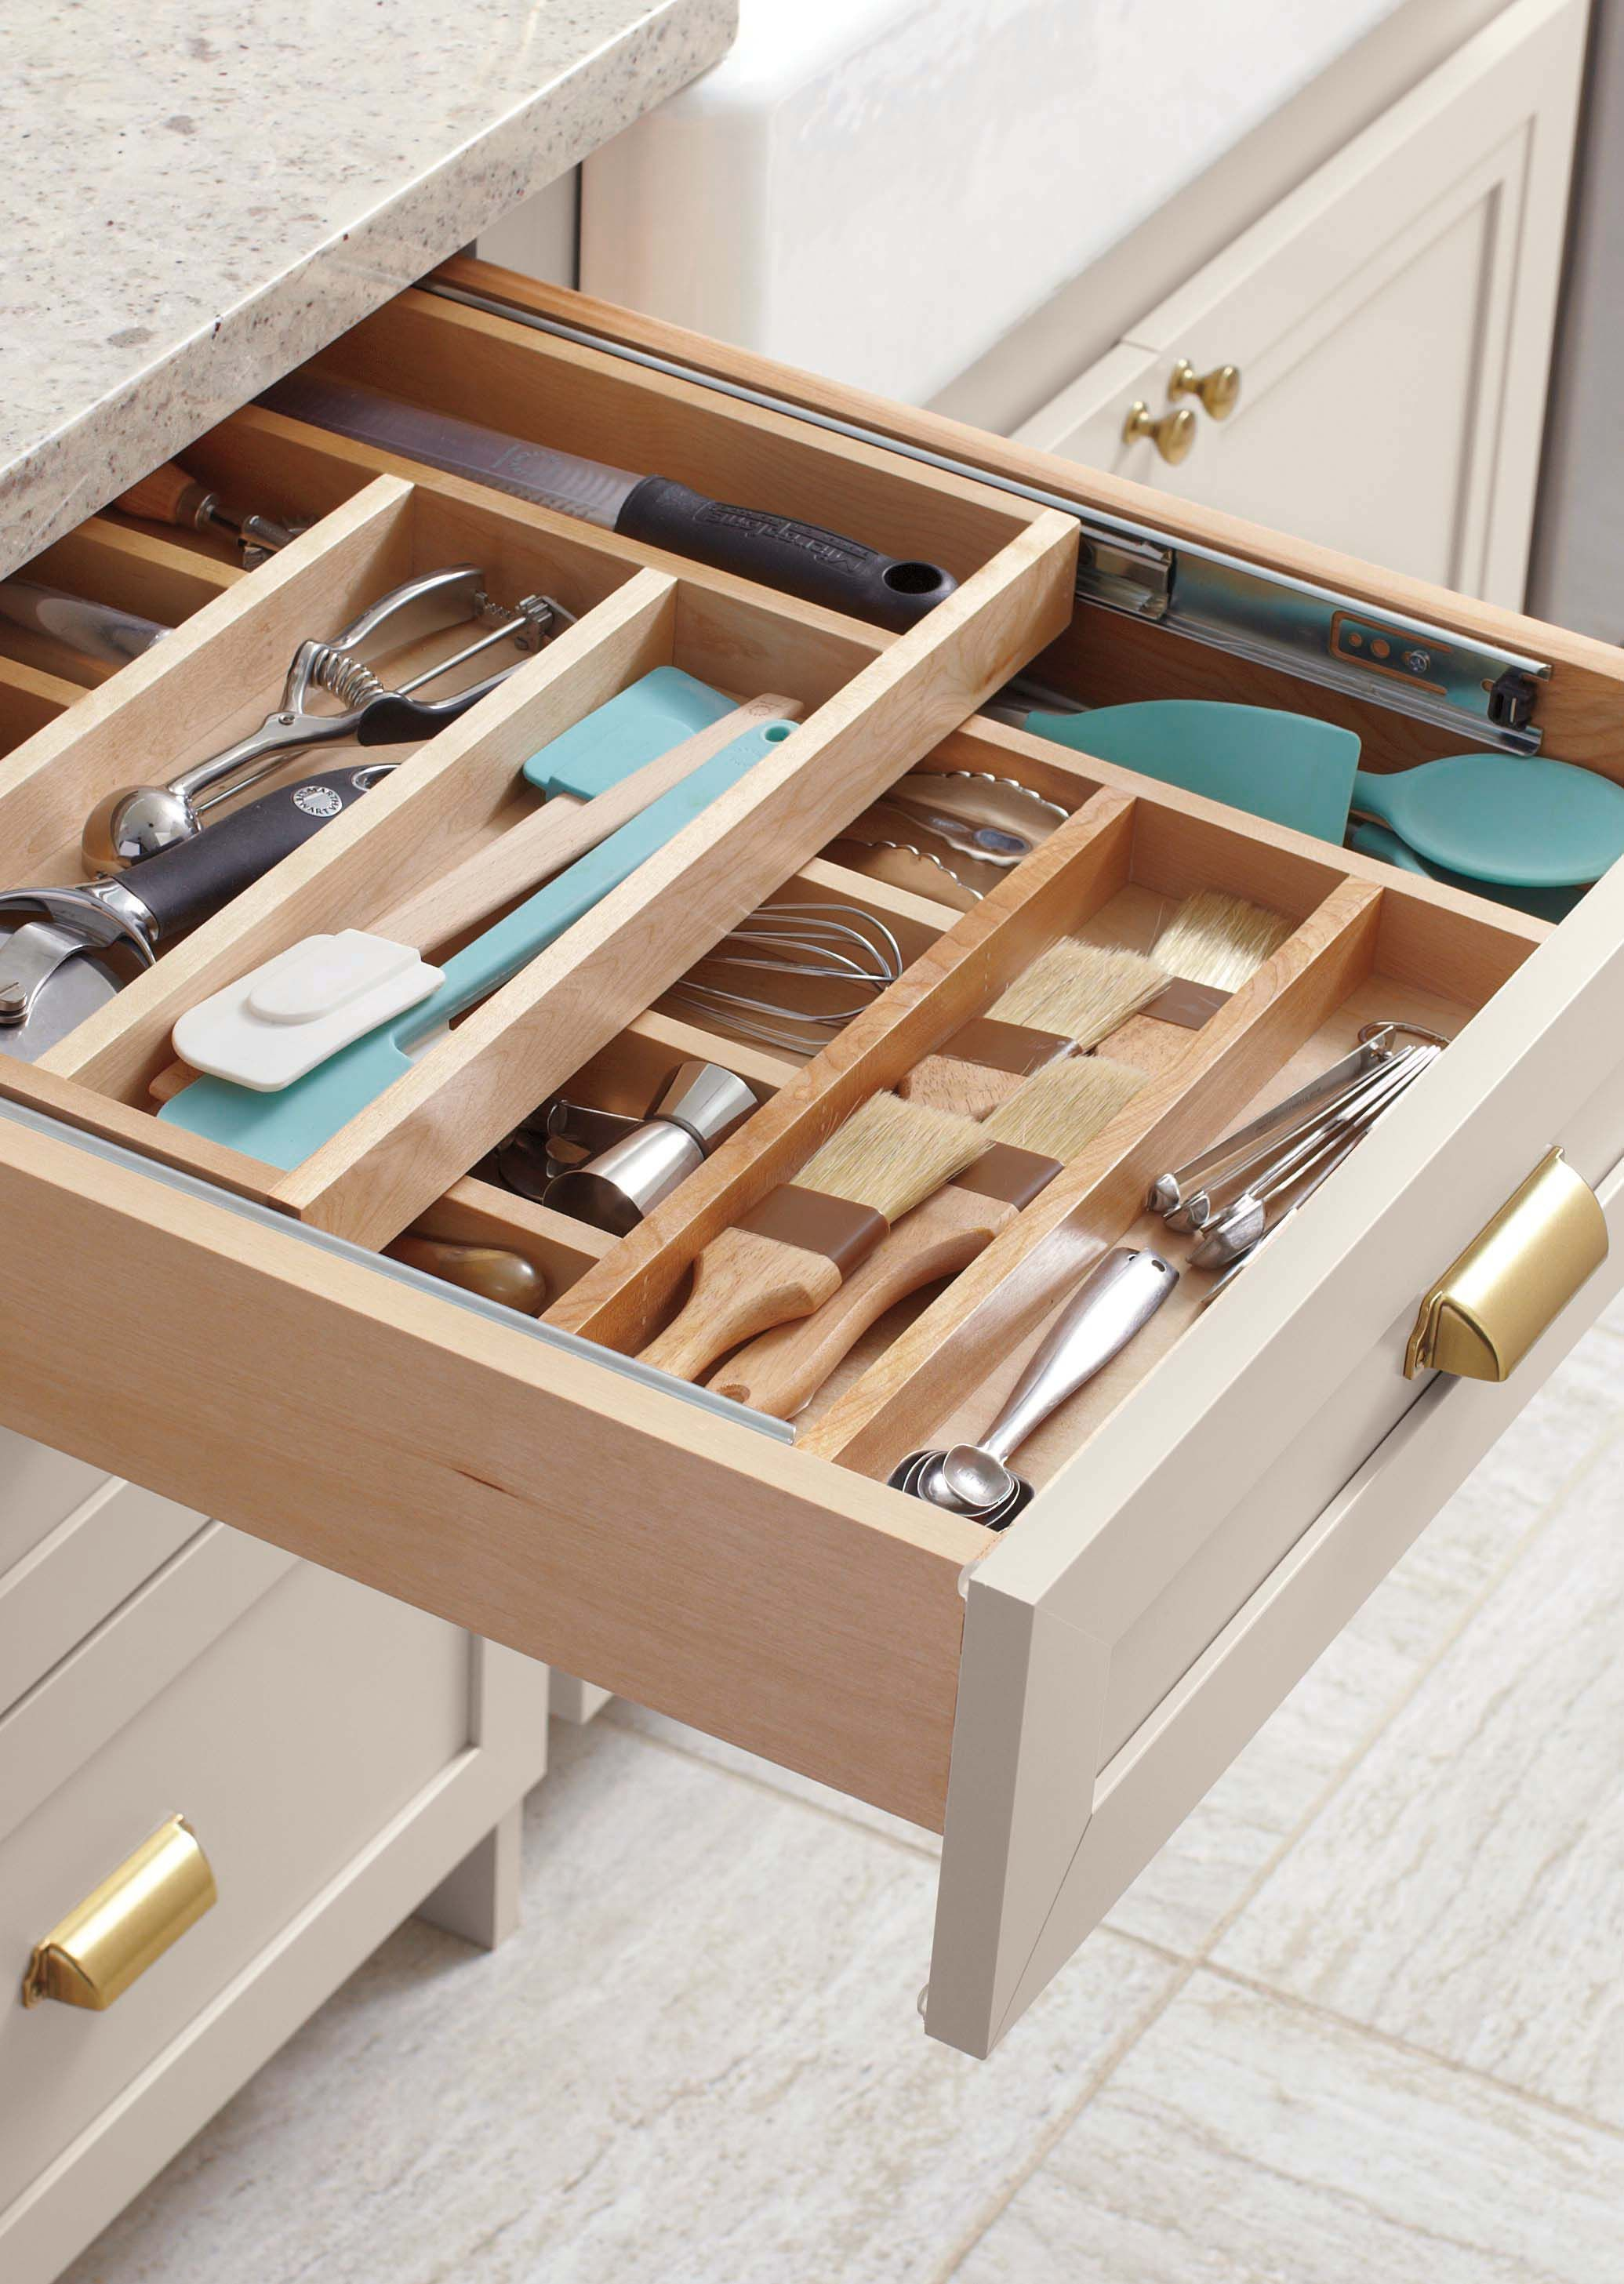 Martha's Top Kitchen Organizing Tips Kitchen storage